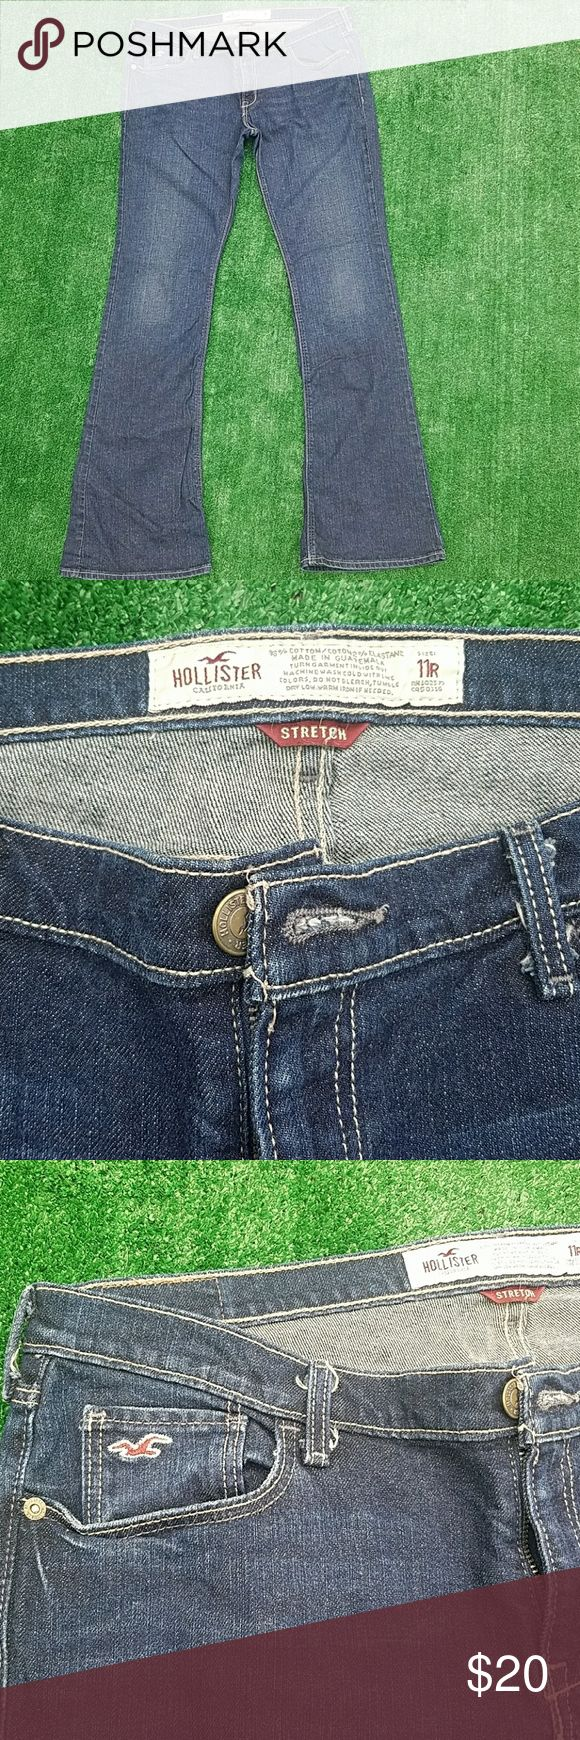 Hollister flare jeans Dark wash, stretch fit, very good condition, some lightening on the back of the heel area Hollister Jeans Flare & Wide Leg